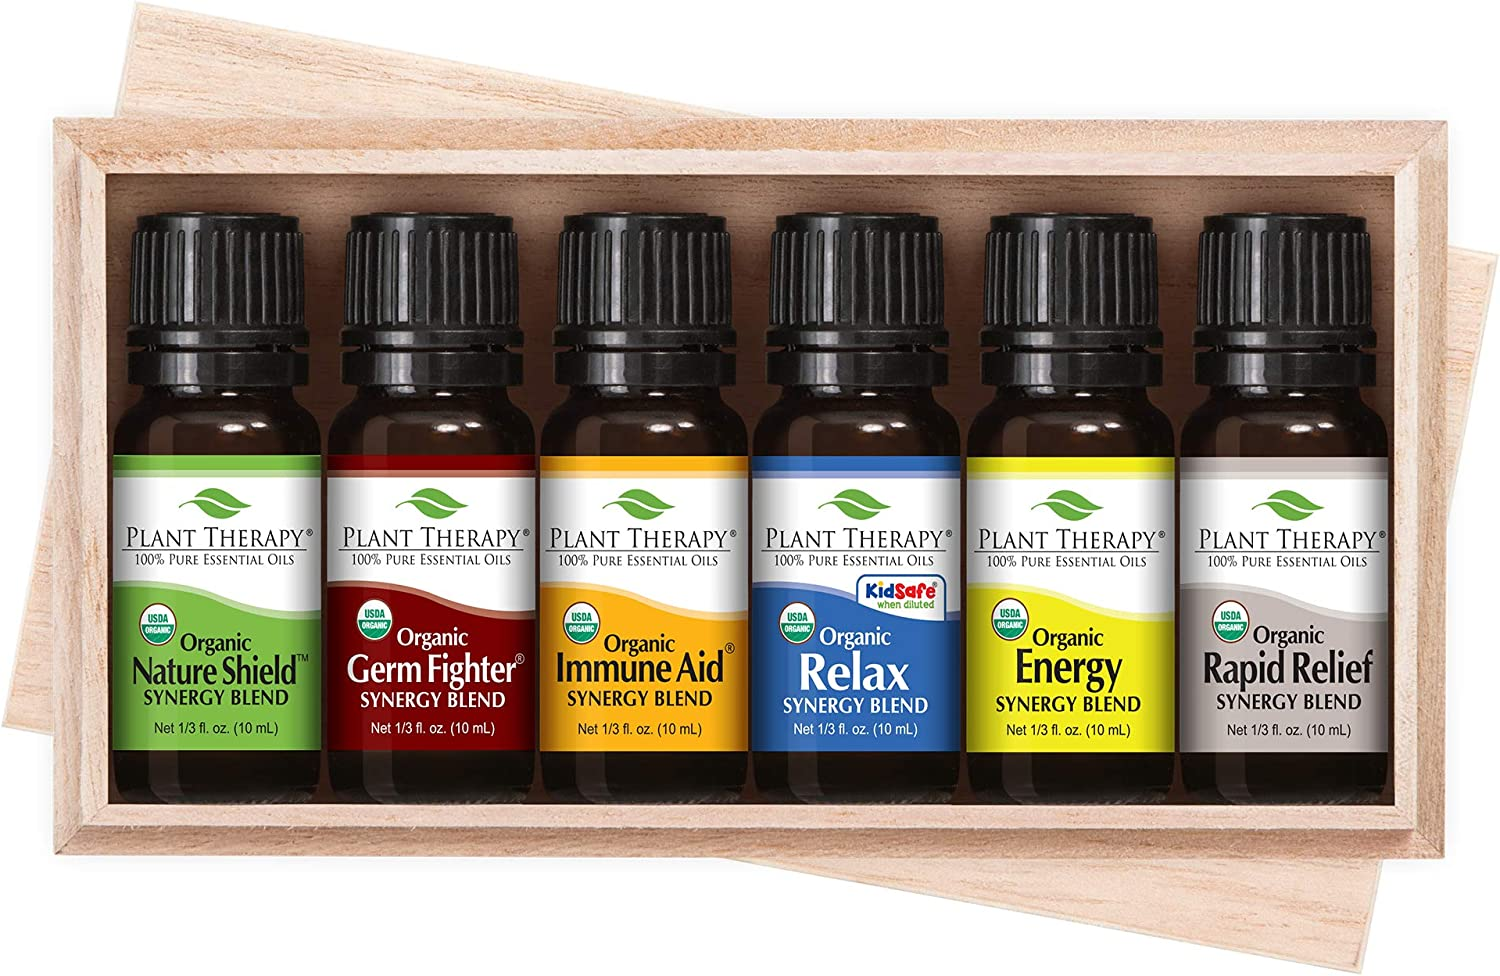 Plant Therapy Top 6 Organic Synergies Set - Essential Oil Blends for Sleep, Calm, Muscle Relief, Energy, Immunity, 100% Pure, Undiluted, Natural, Therapeutic Grade 10 mL (1/3 oz)